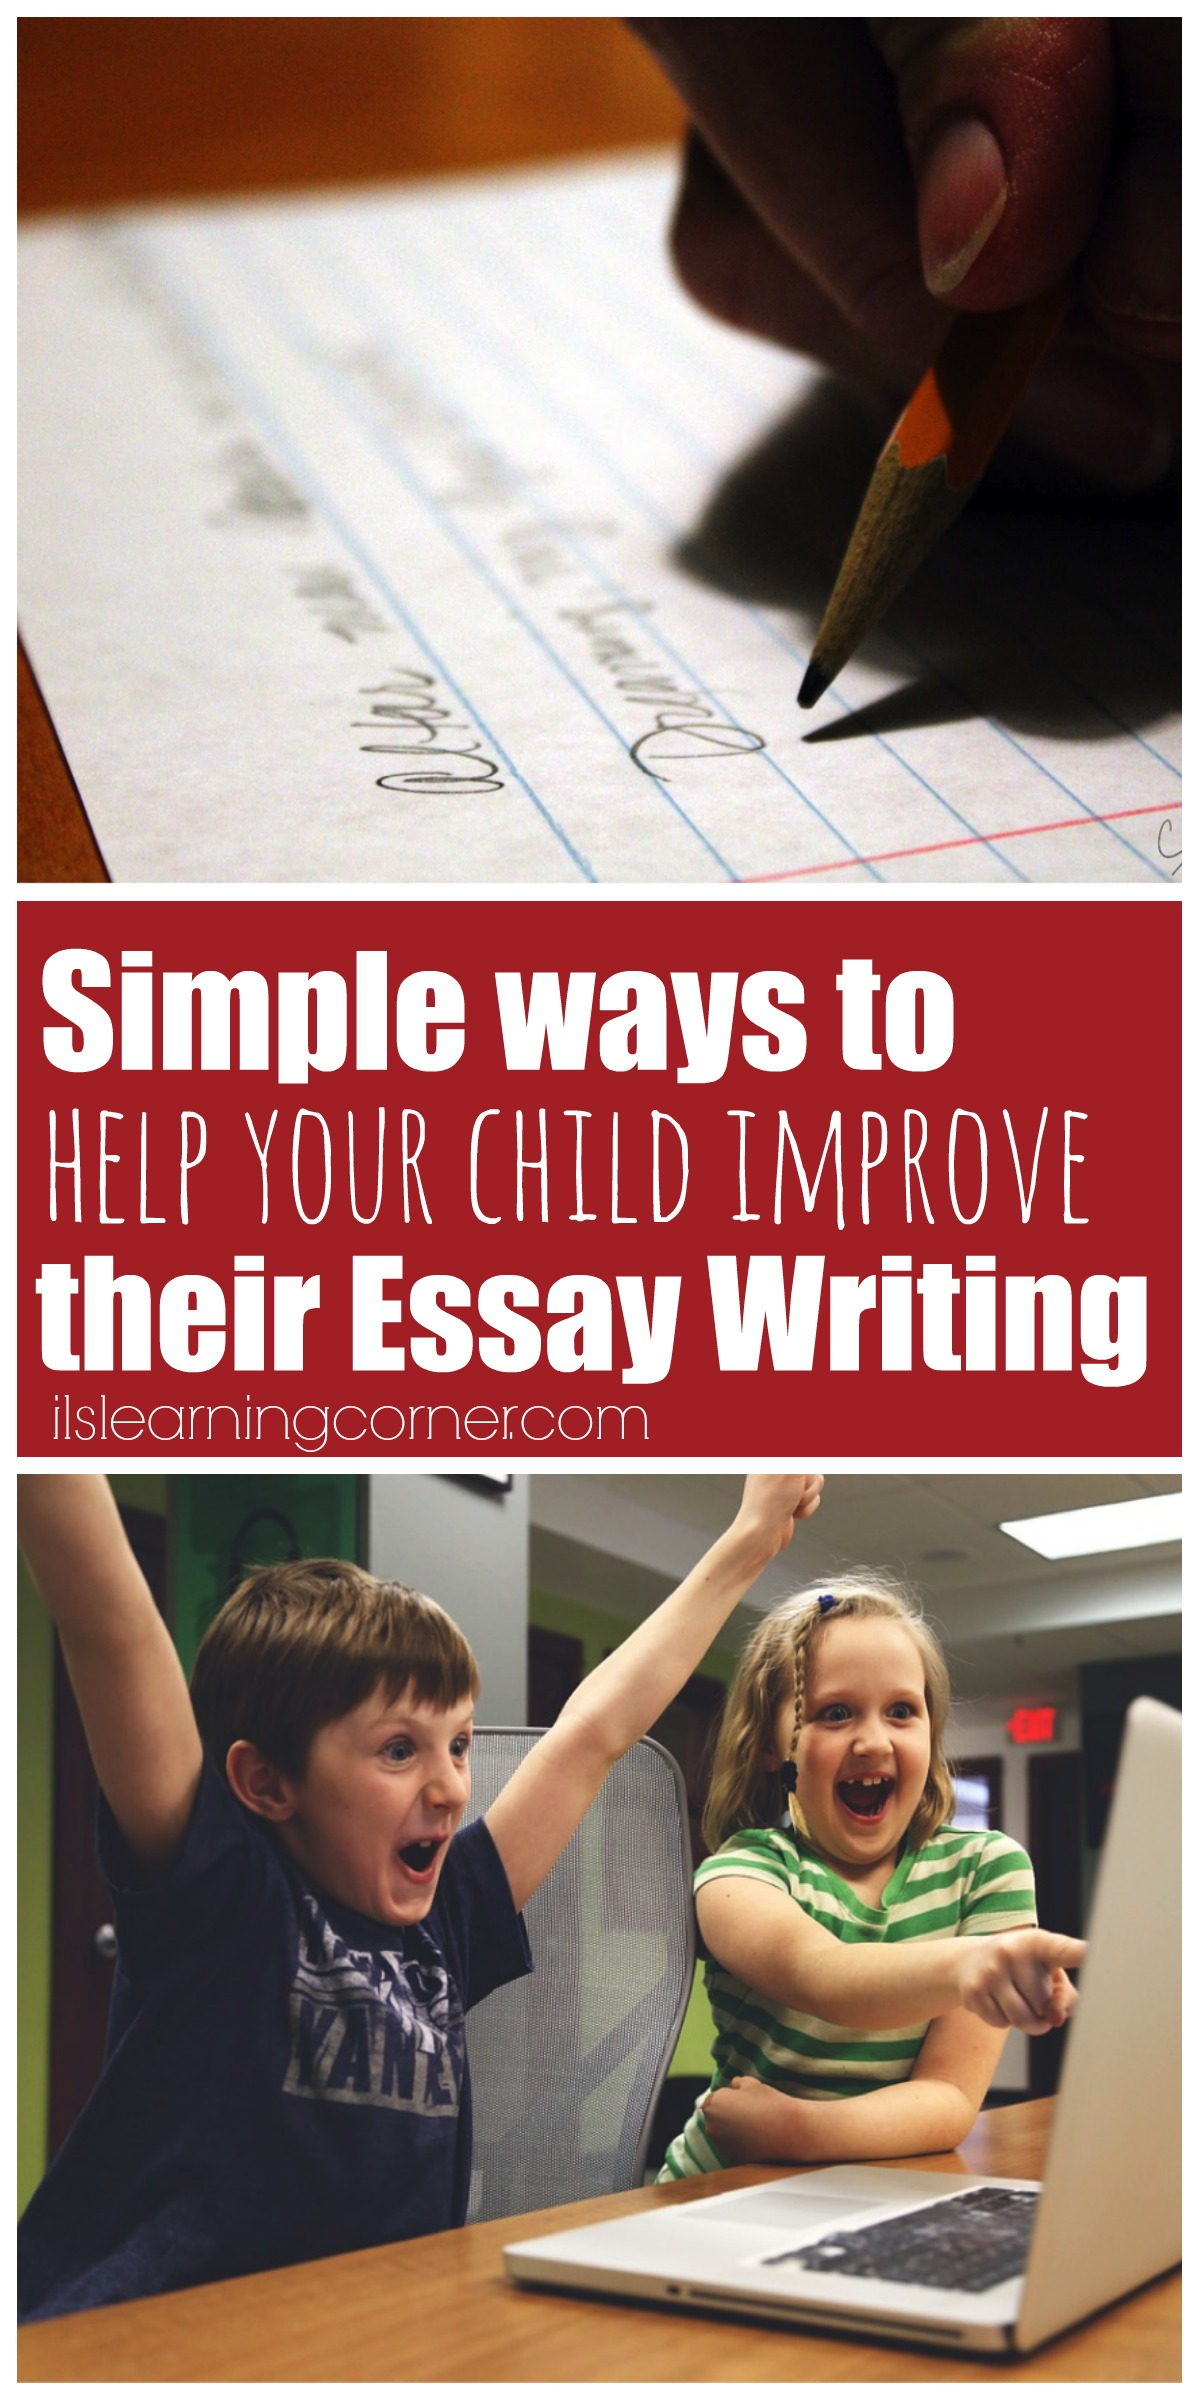 how to help kids with writing skills Writing worksheets help children develop their early fine motor skills and learn the basics of letters and numbers get your kids started down the right path with these free writing worksheets.